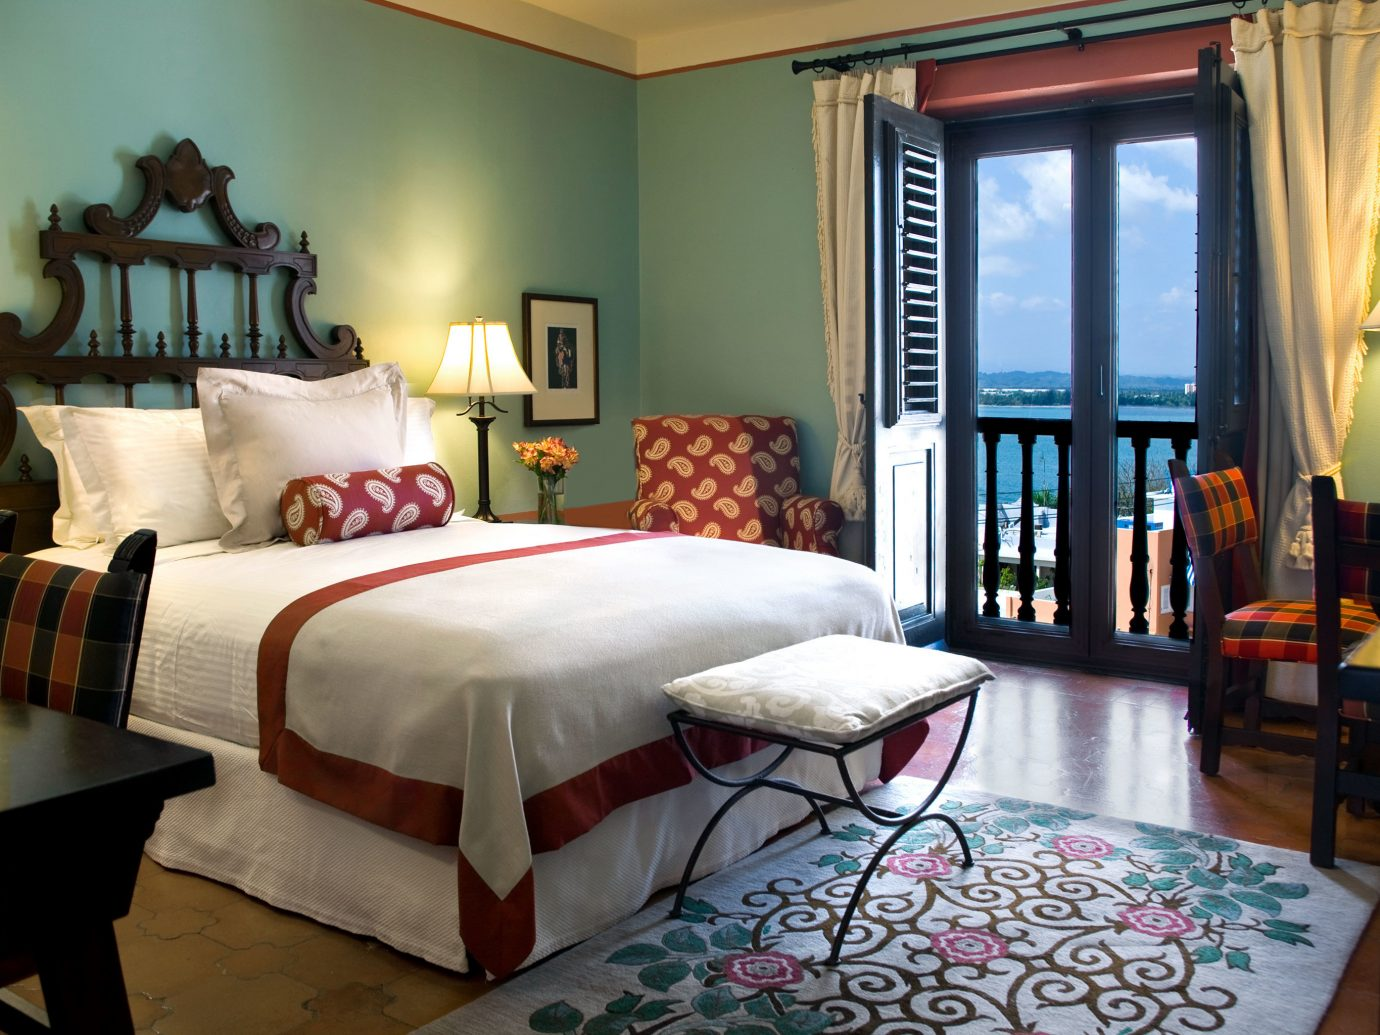 Bedroom Classic Historic Hotels Jetsetter Guides Luxury Romantic Suite indoor wall room floor sofa Living table property window living room estate home interior design hotel cottage real estate furniture bed sheet Villa bed decorated area